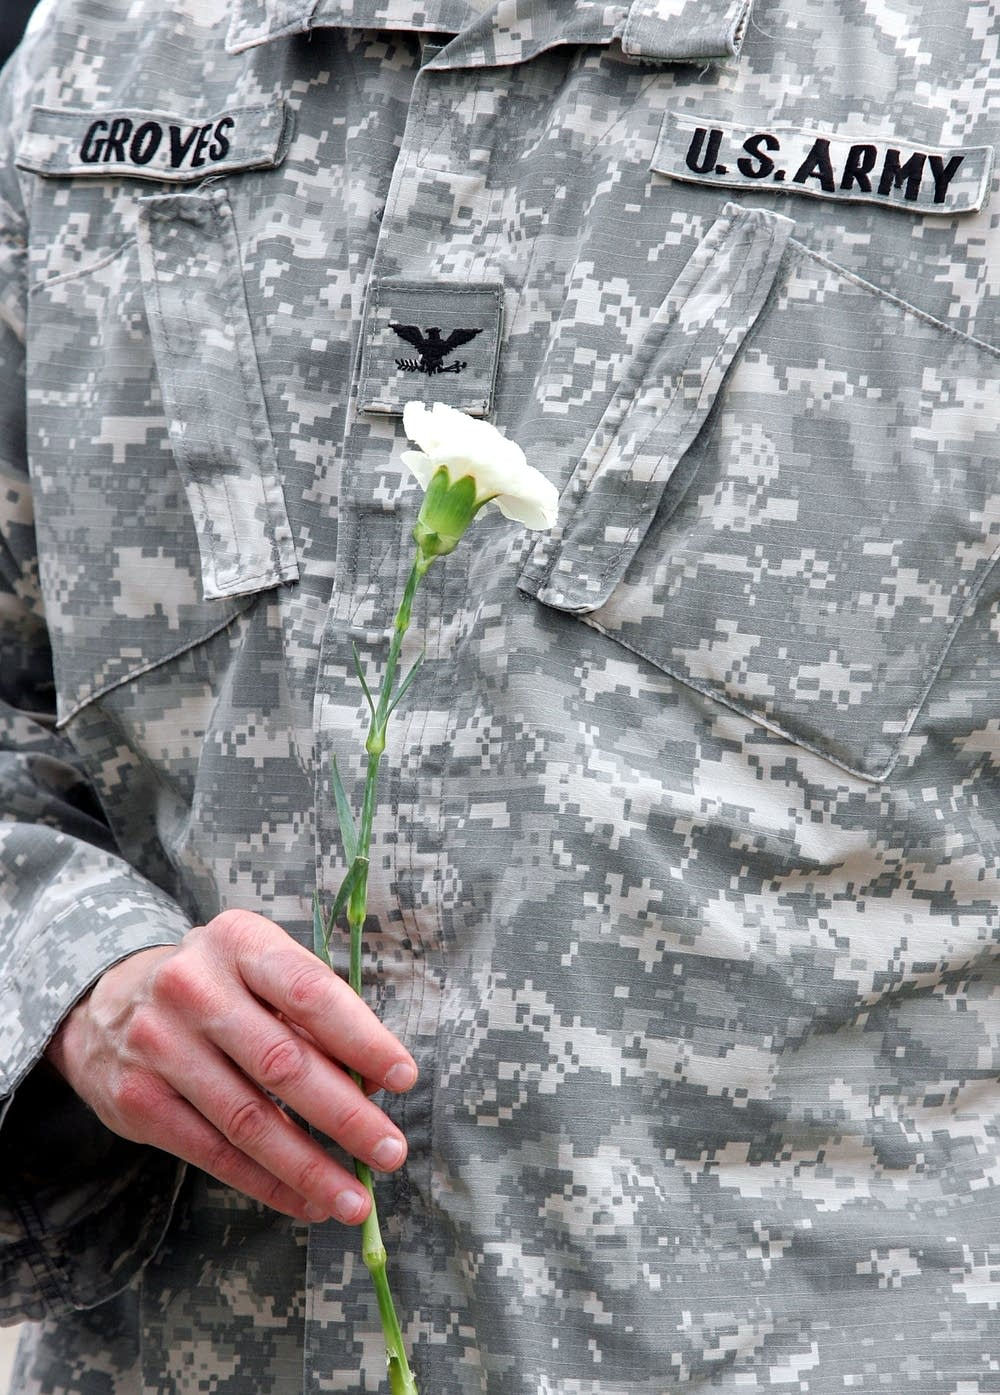 A U.S. soldier holds a flower